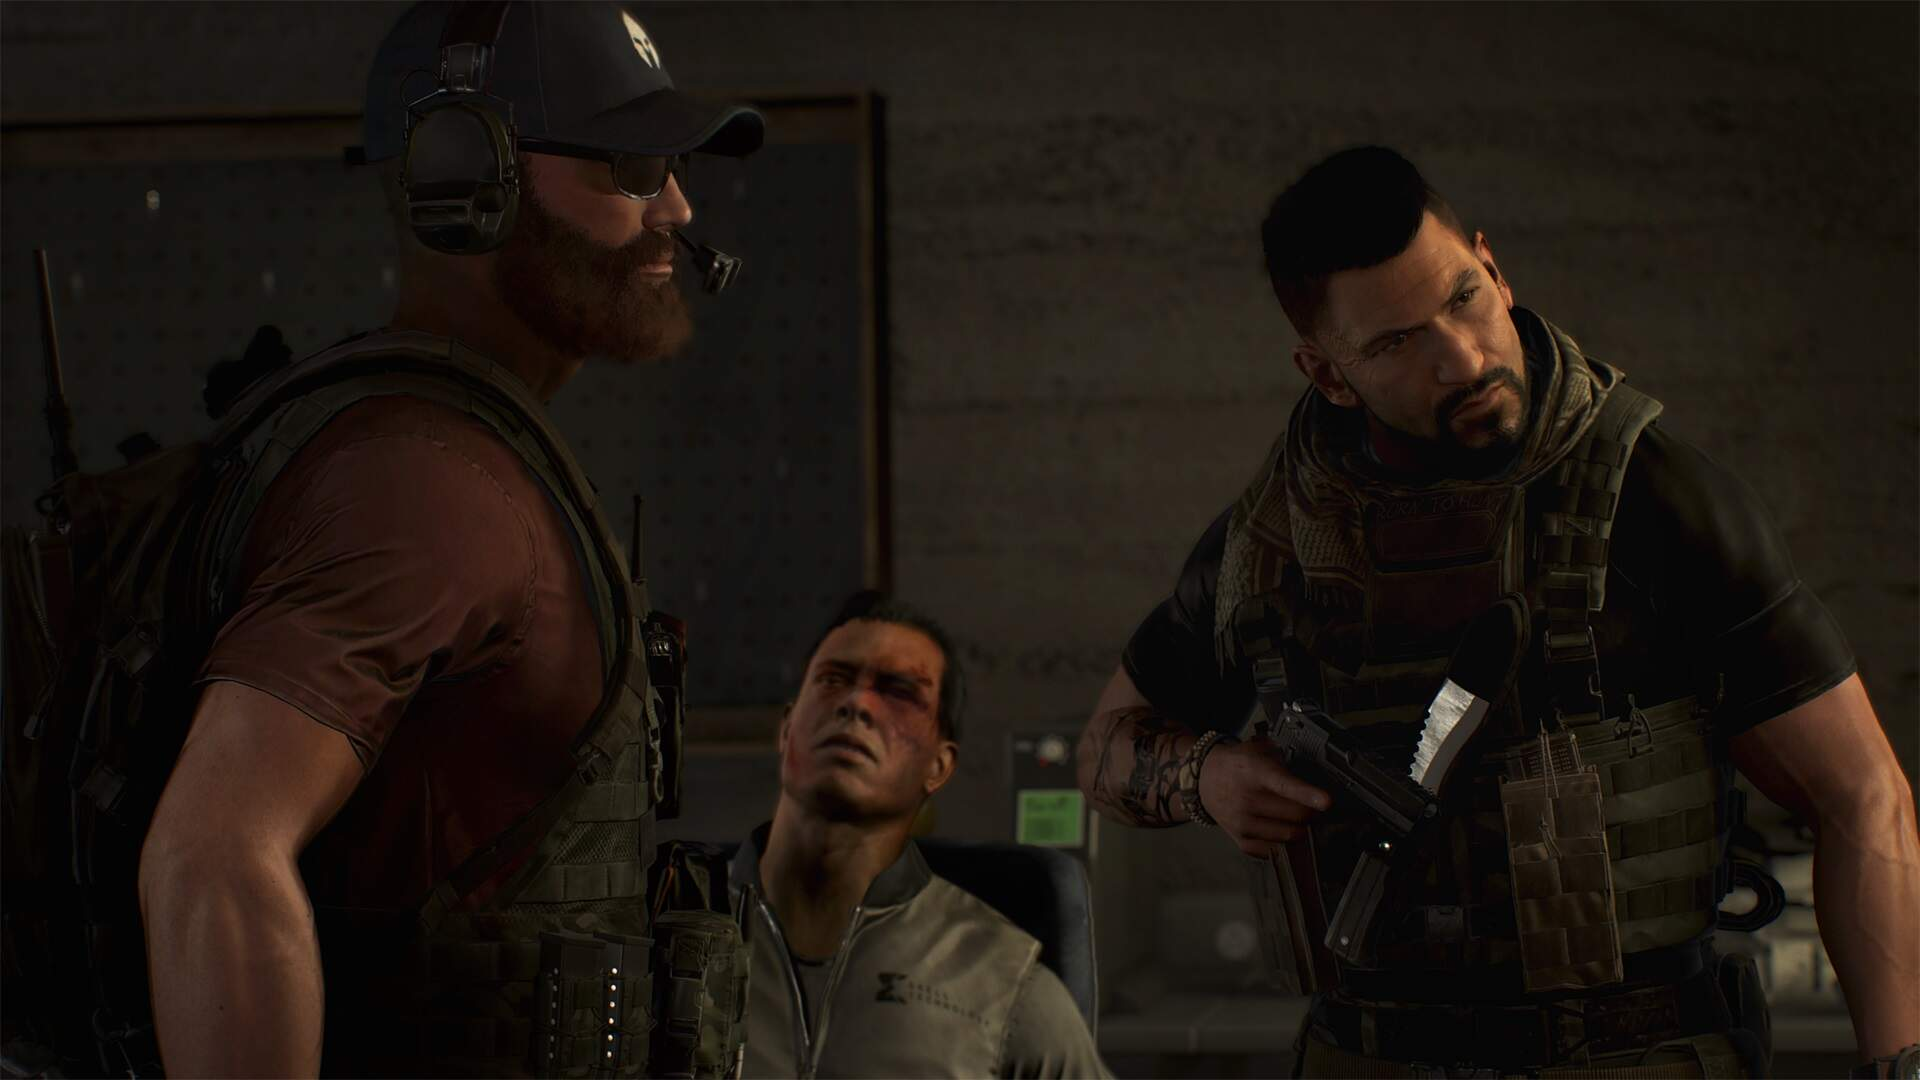 Ghost Recon Wildlands Adds New Story Content Starring The Punisher's Jon Bernthal